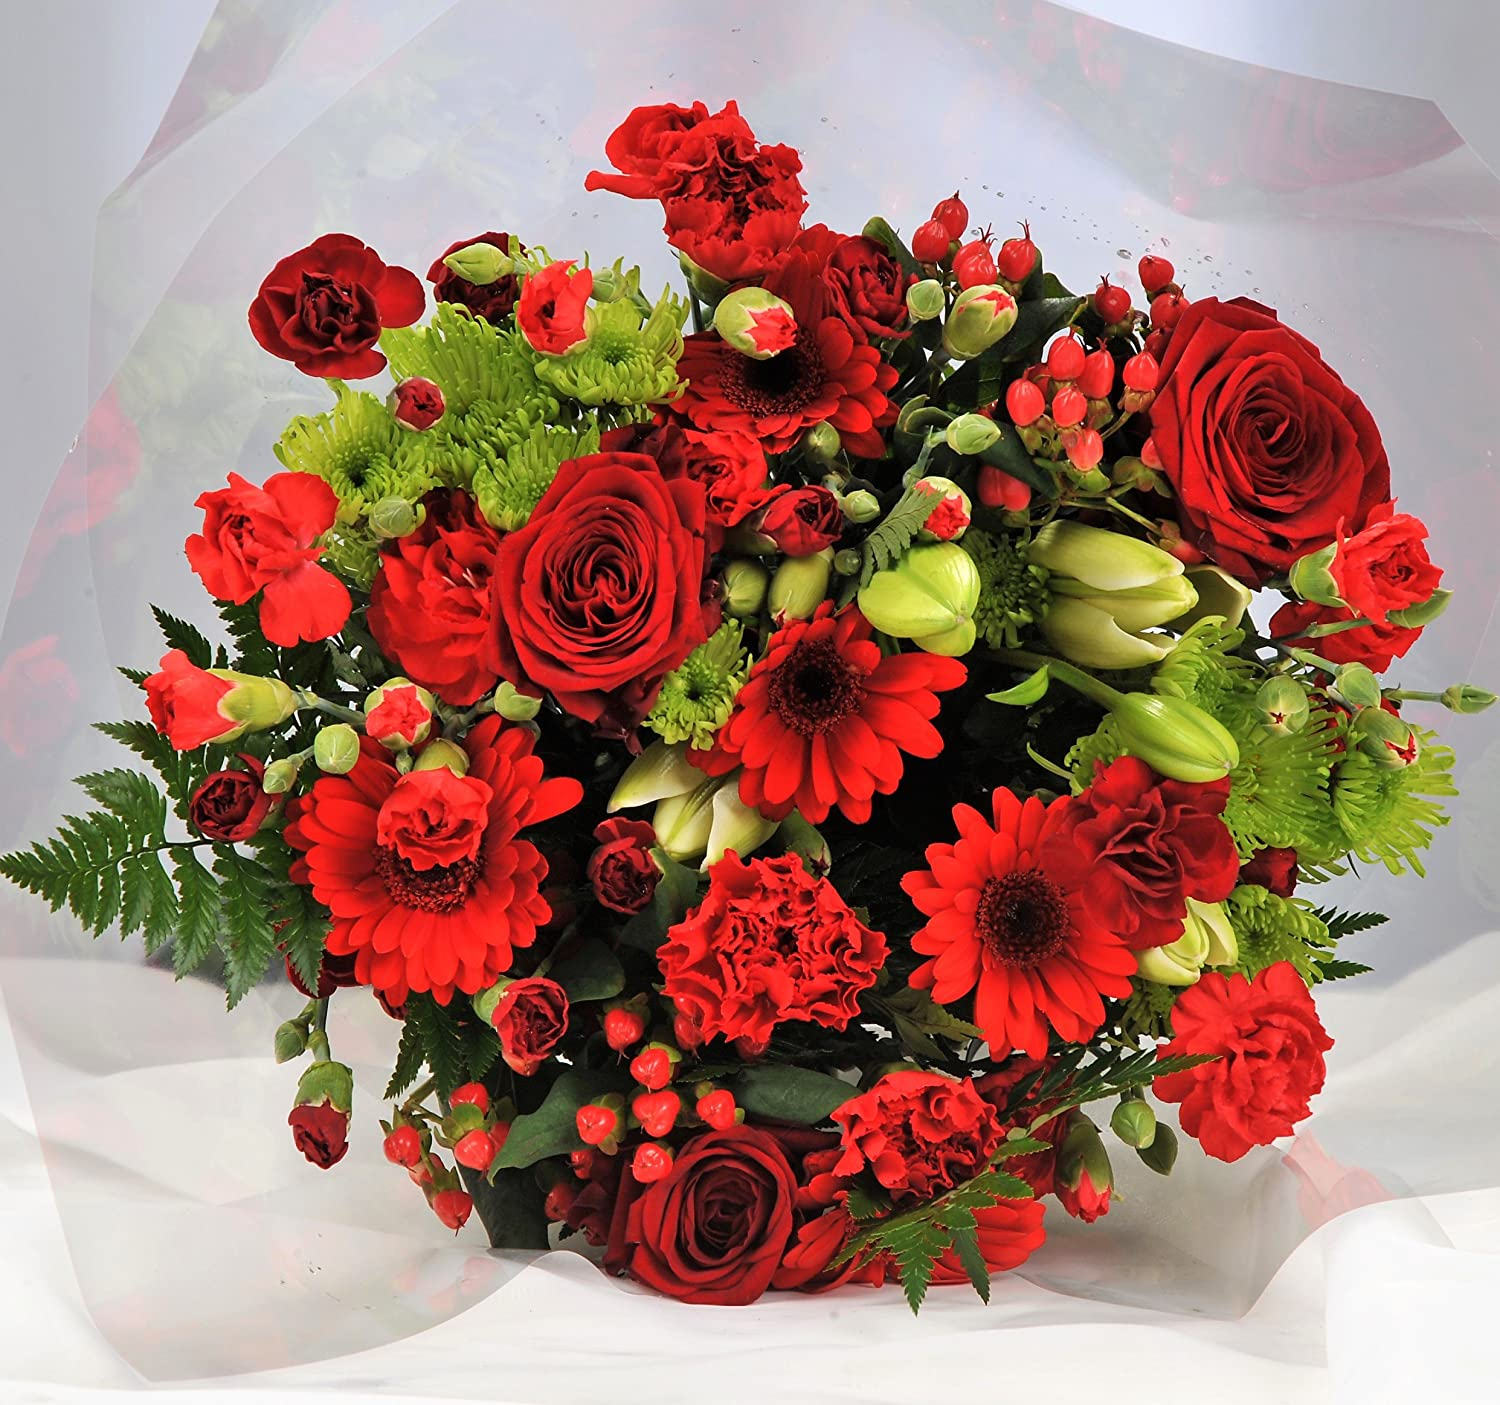 All Red Ruby Flower Bouquet - Delivered FREE UK Next Day 7 Days a Week - Anniversary or Birthday Present Homeland Florists